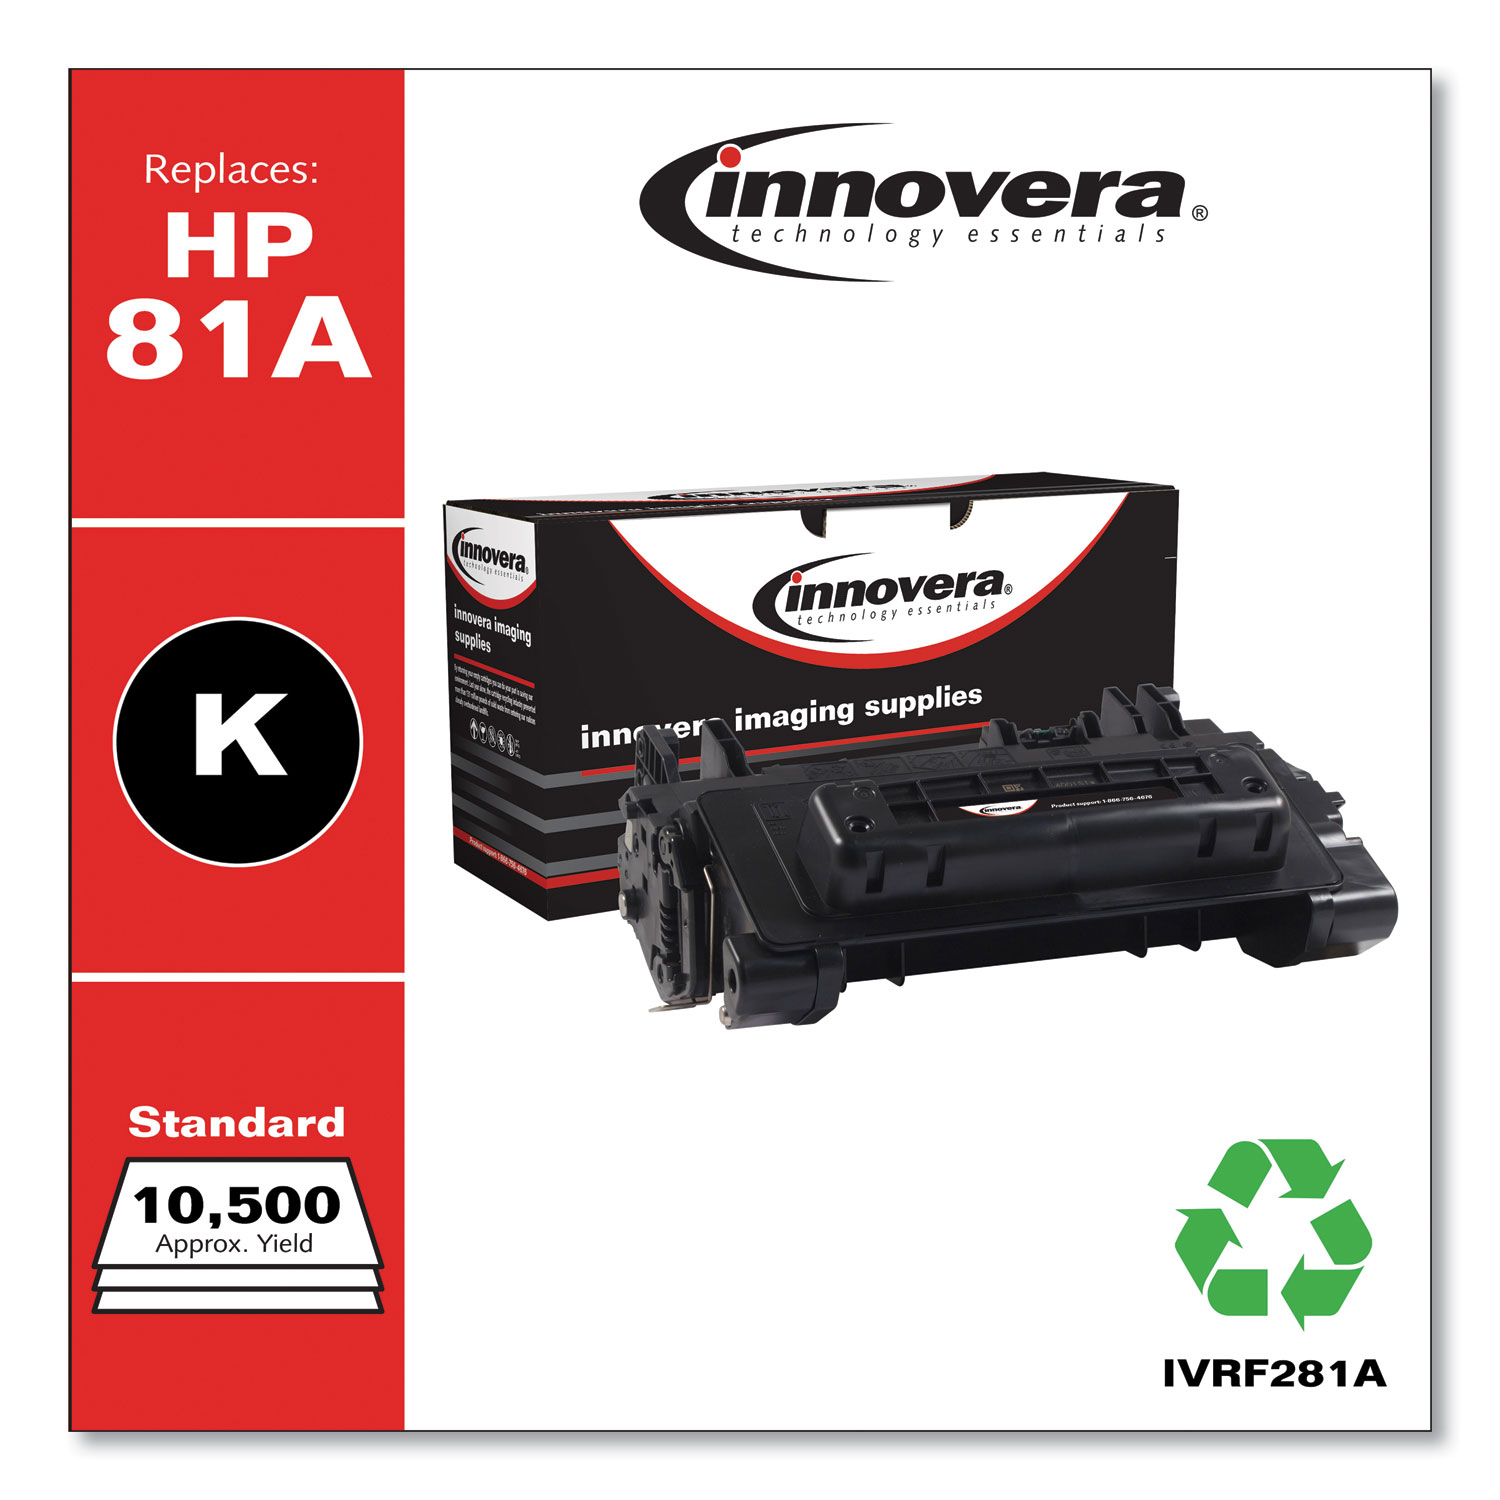 Remanufactured Black Toner Cartridge, Replacement for HP 81A (CF281A), 10,500 Page-Yield